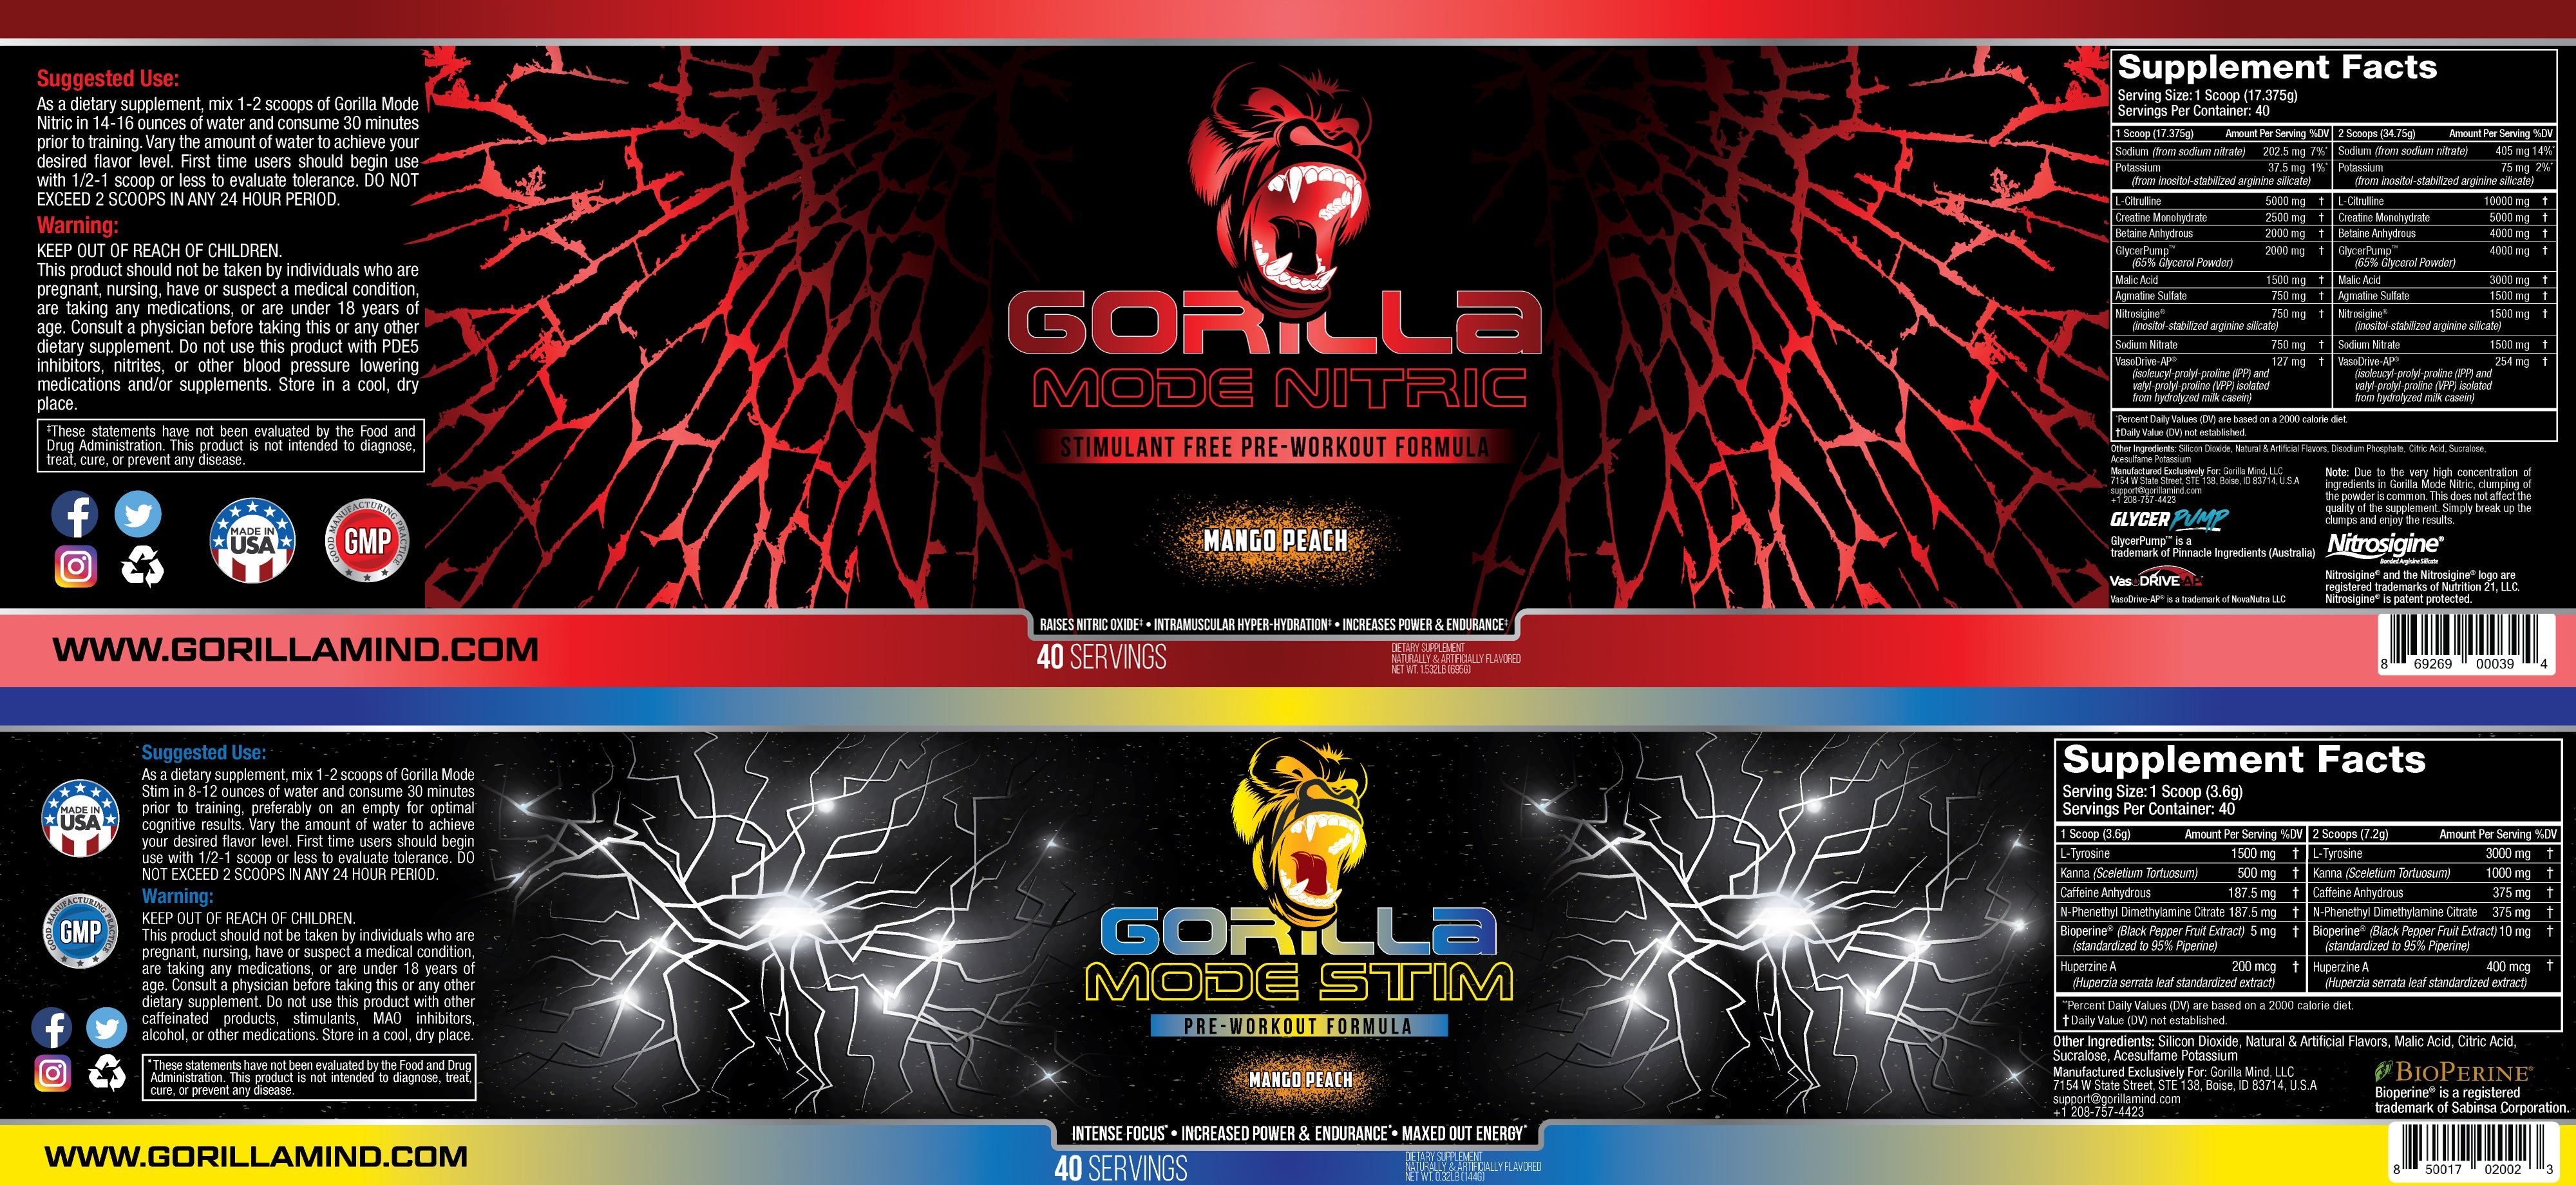 Gorilla Mode Stim + Nitric Bundle Supplement Facts